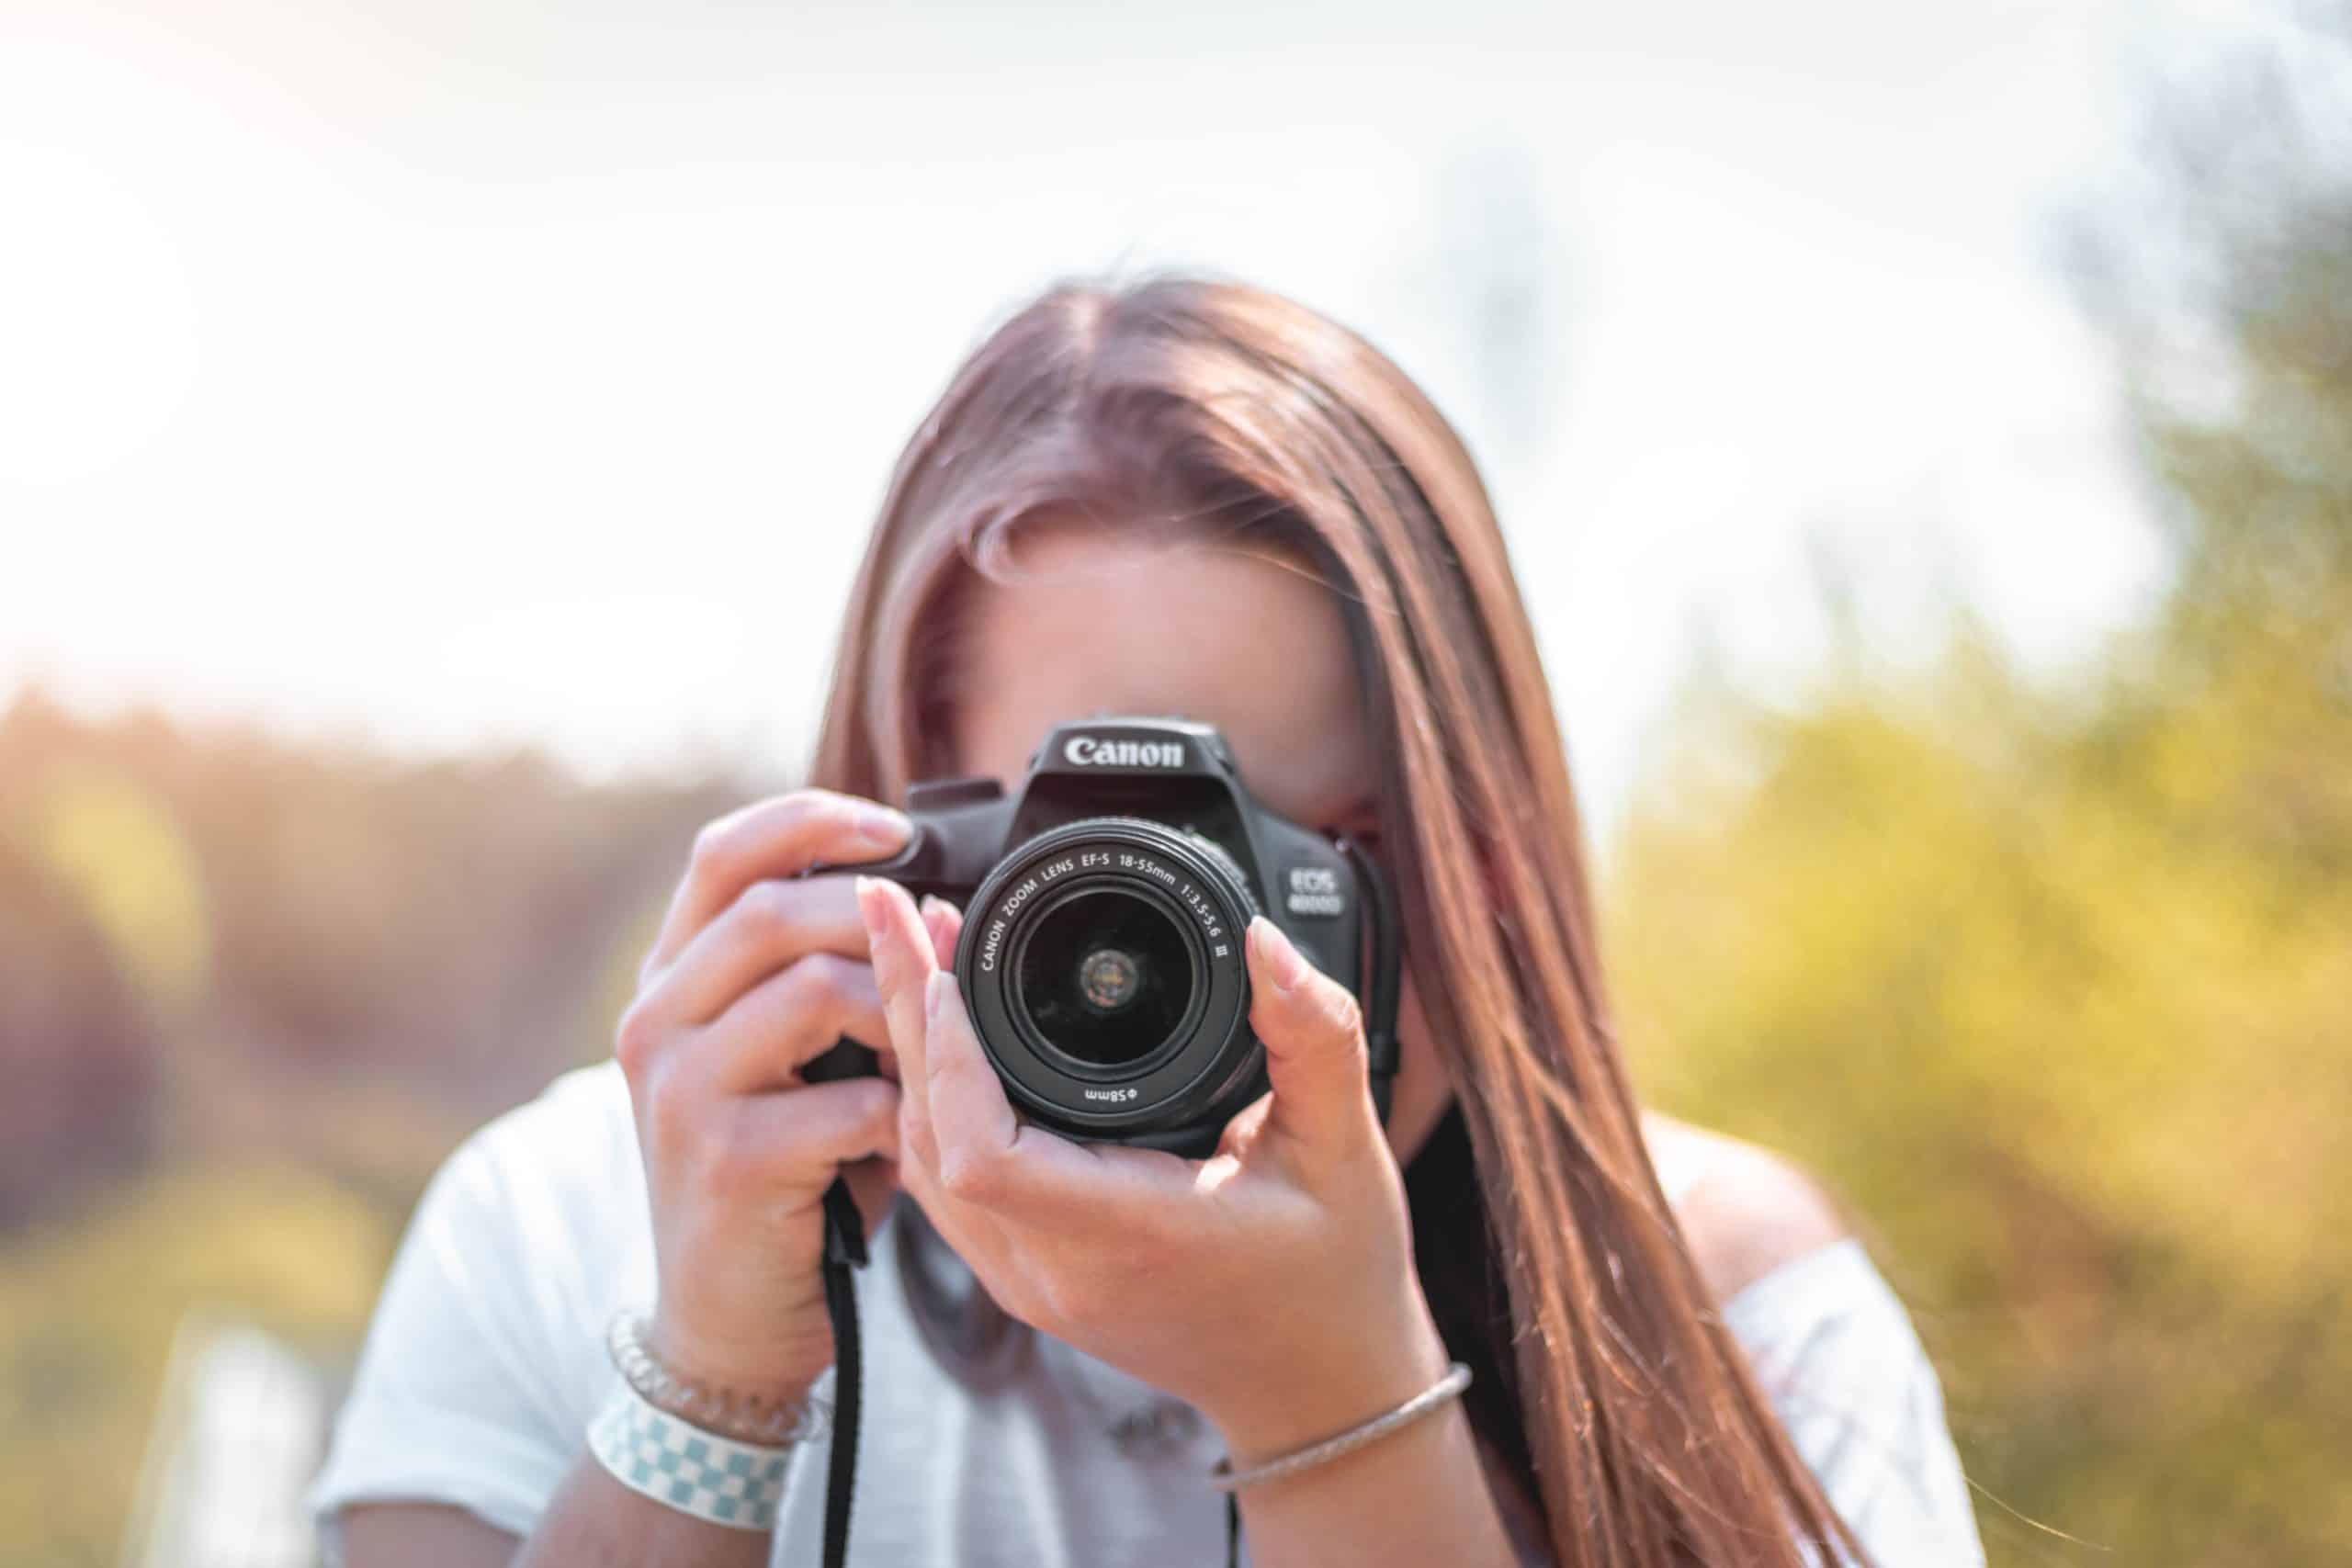 A woman taking a photo with a DSLR camera